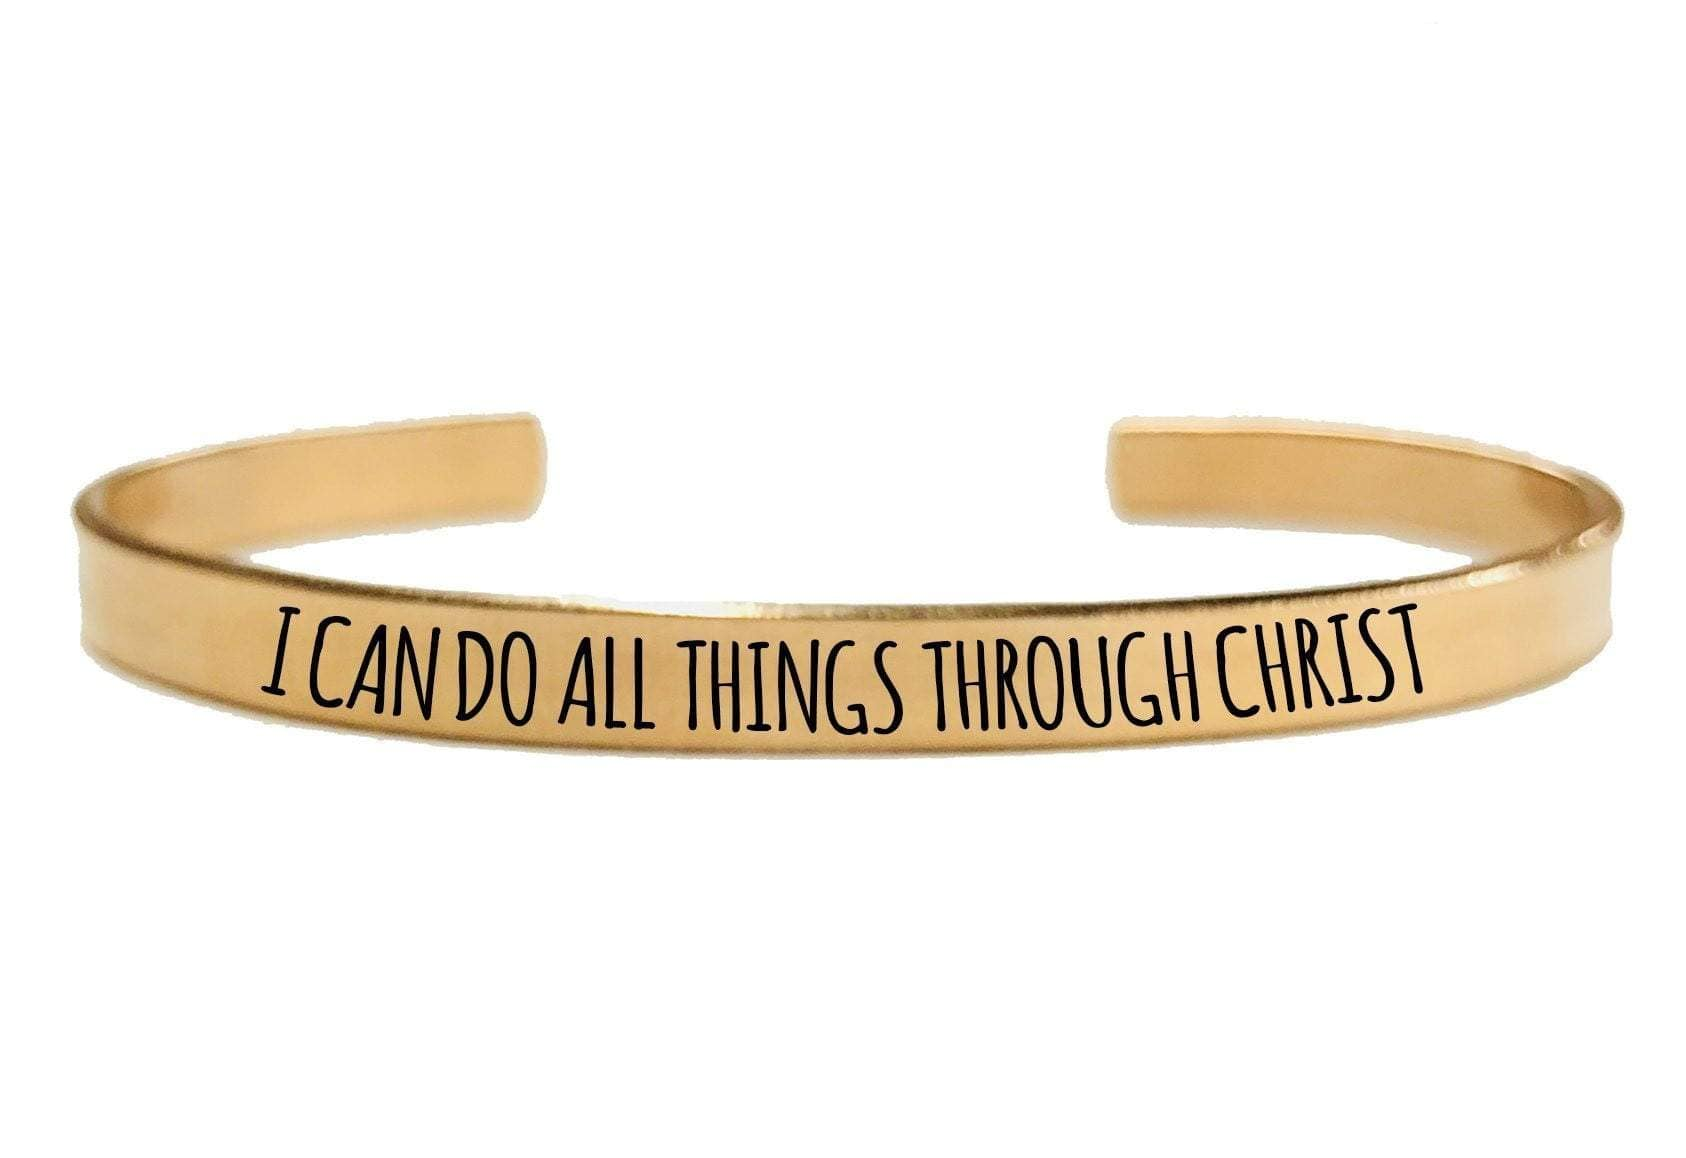 I CAN DO ALL THINGS THROUGH CHRIST CUFF BRACELET